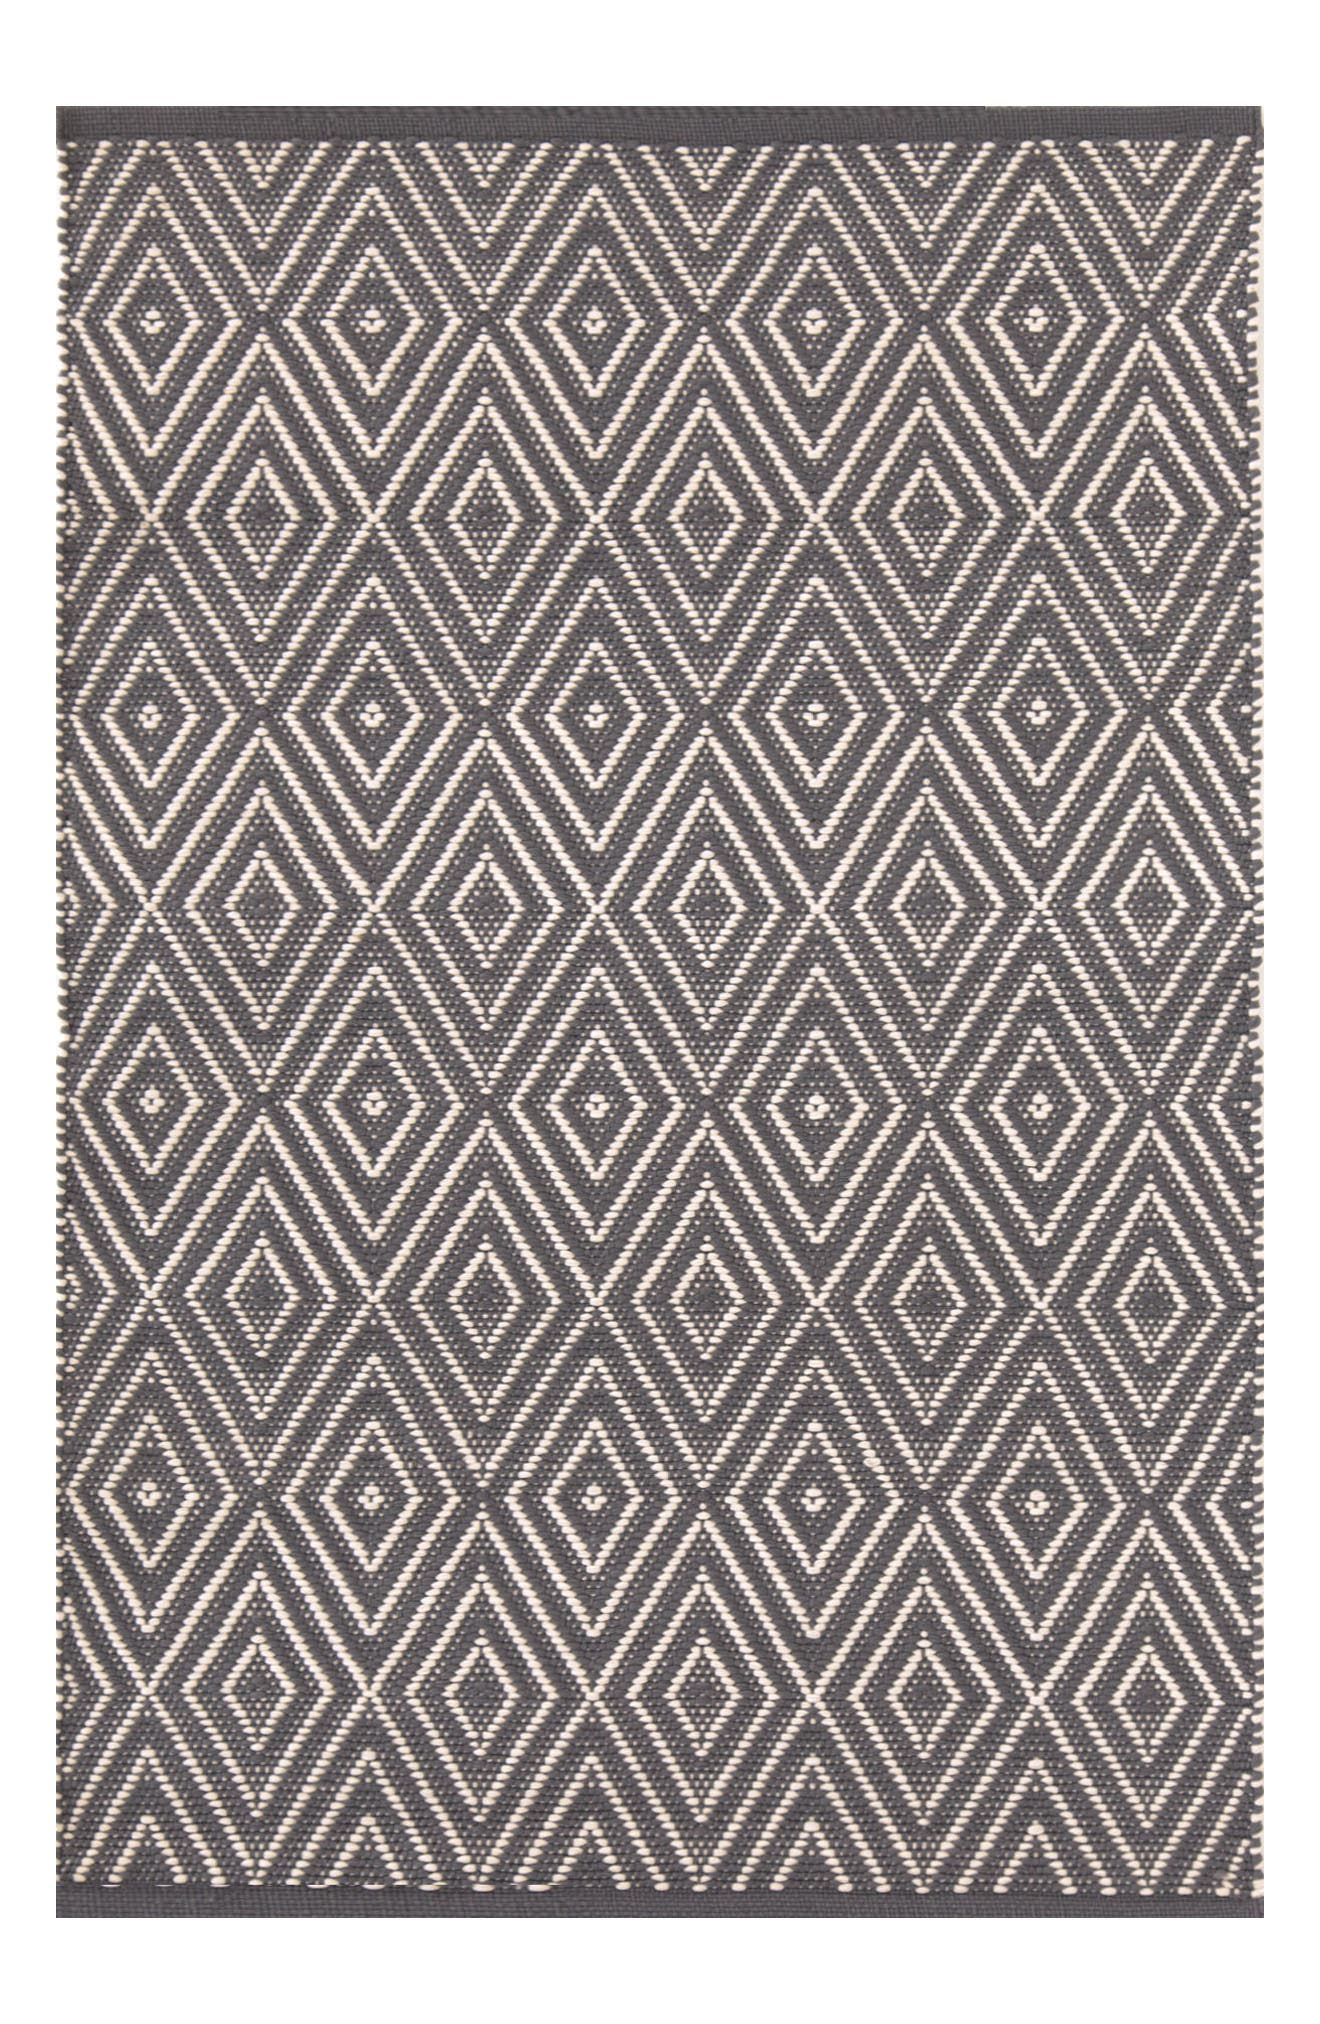 Alternate Image 1 Selected - Dash & Albert Diamond Print Rug